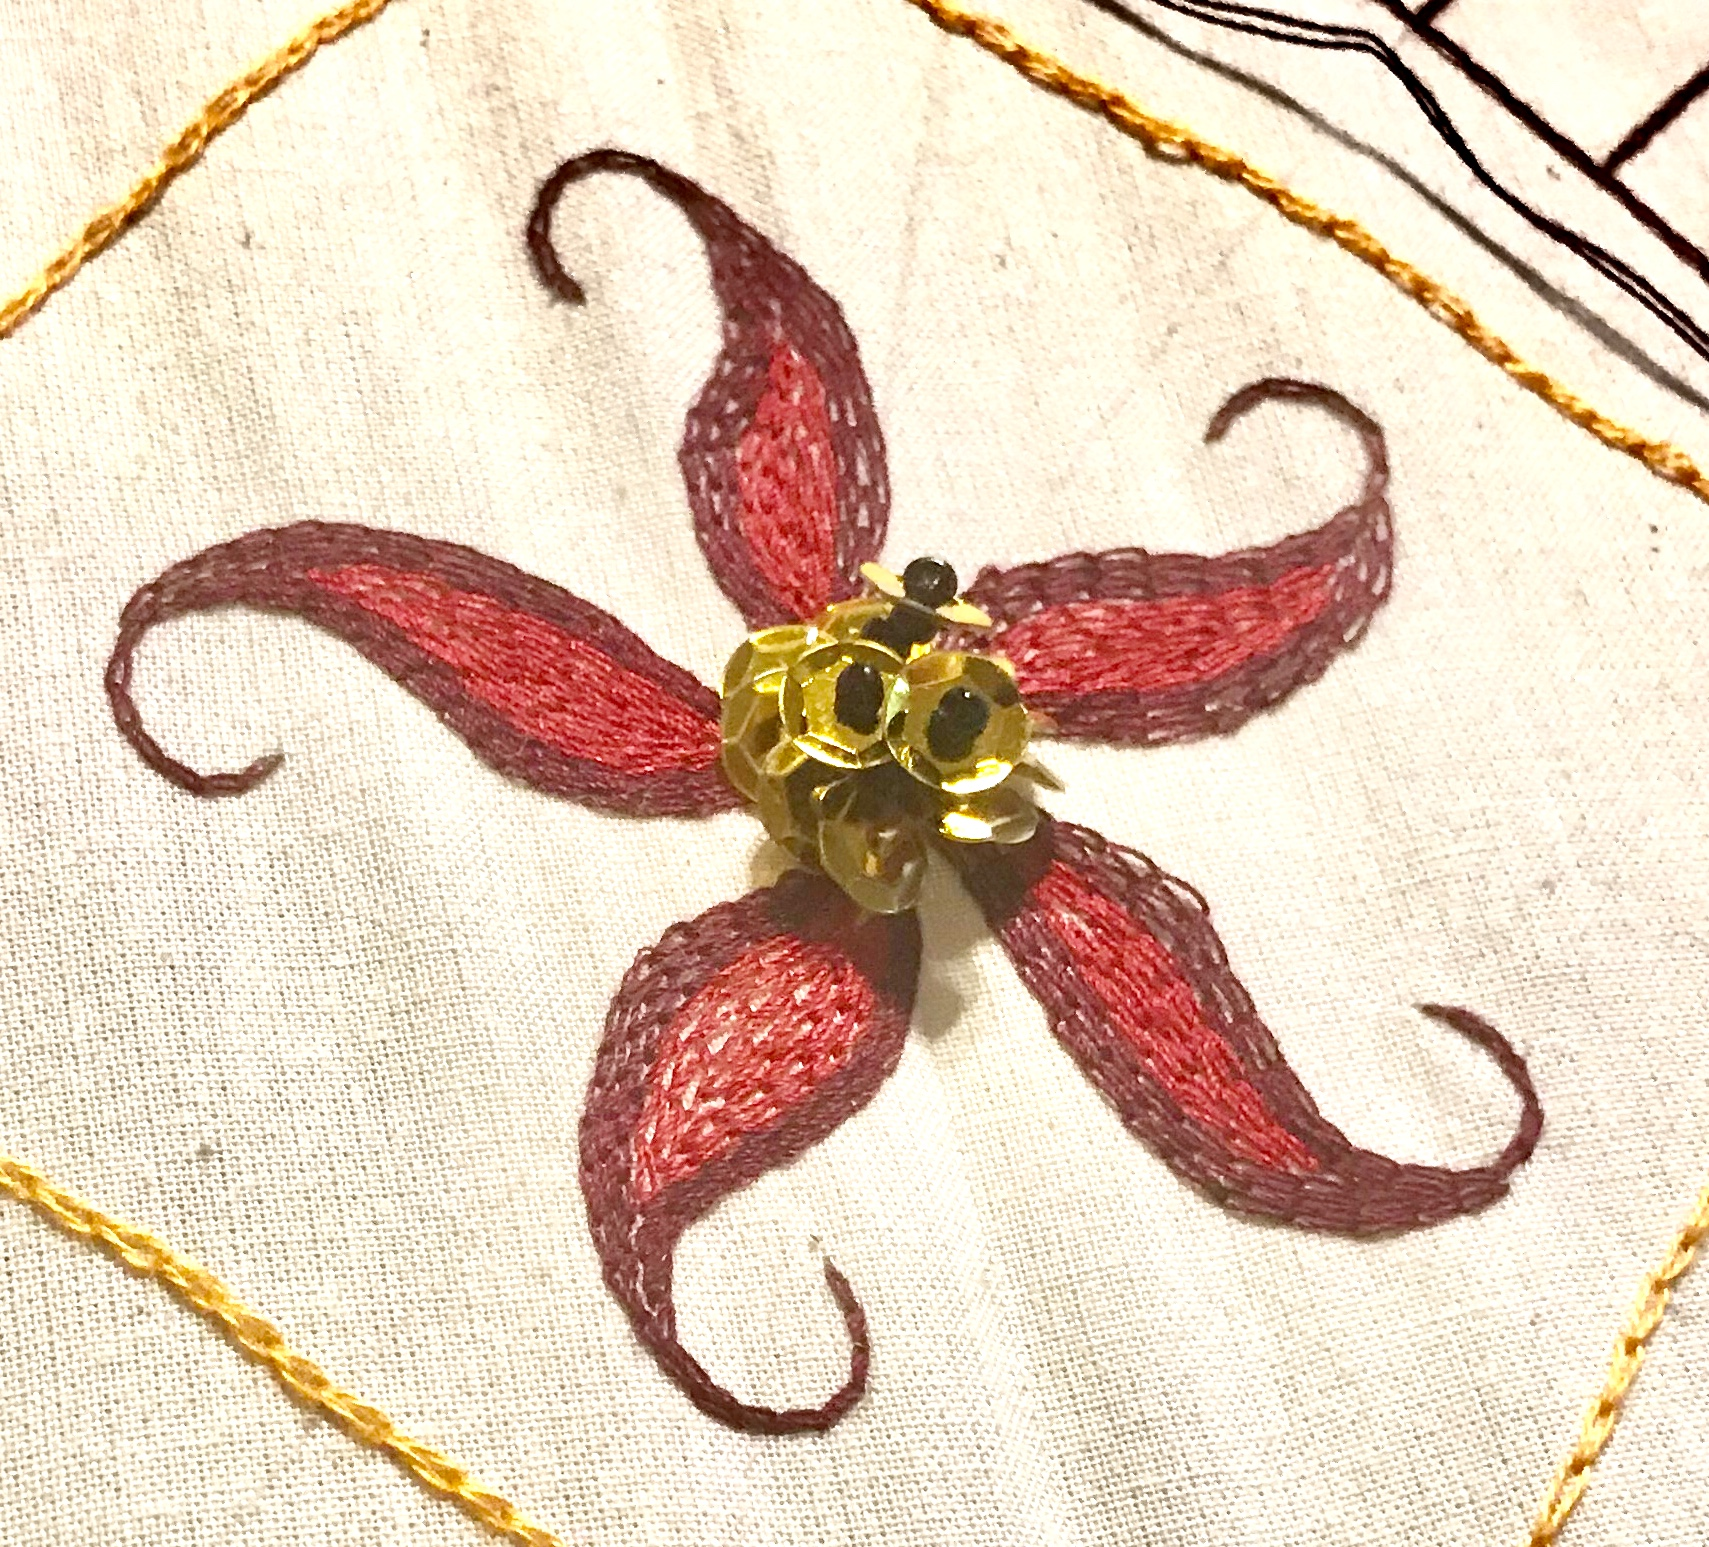 Five-point embroidered flower with beaded center in red and gold by Nathan Perez for the tambour class he will be teaching at Tchad workroom sewing studio in Chicago in August